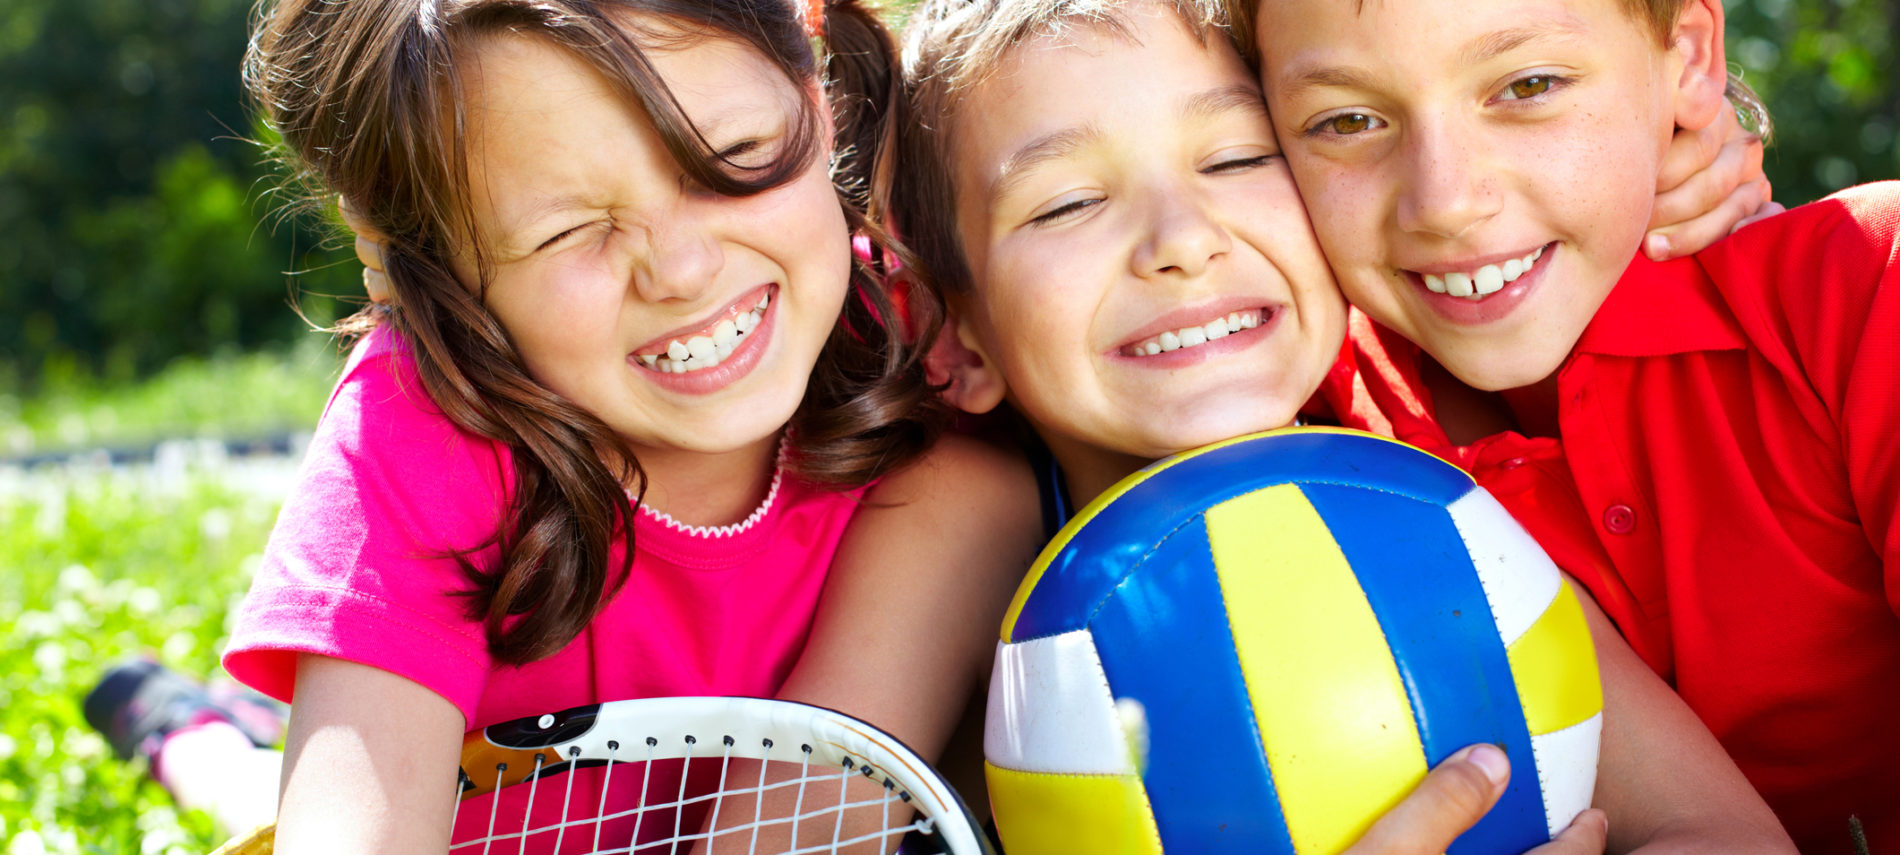 Three happy kids playing on grass, soccer ball and racket..